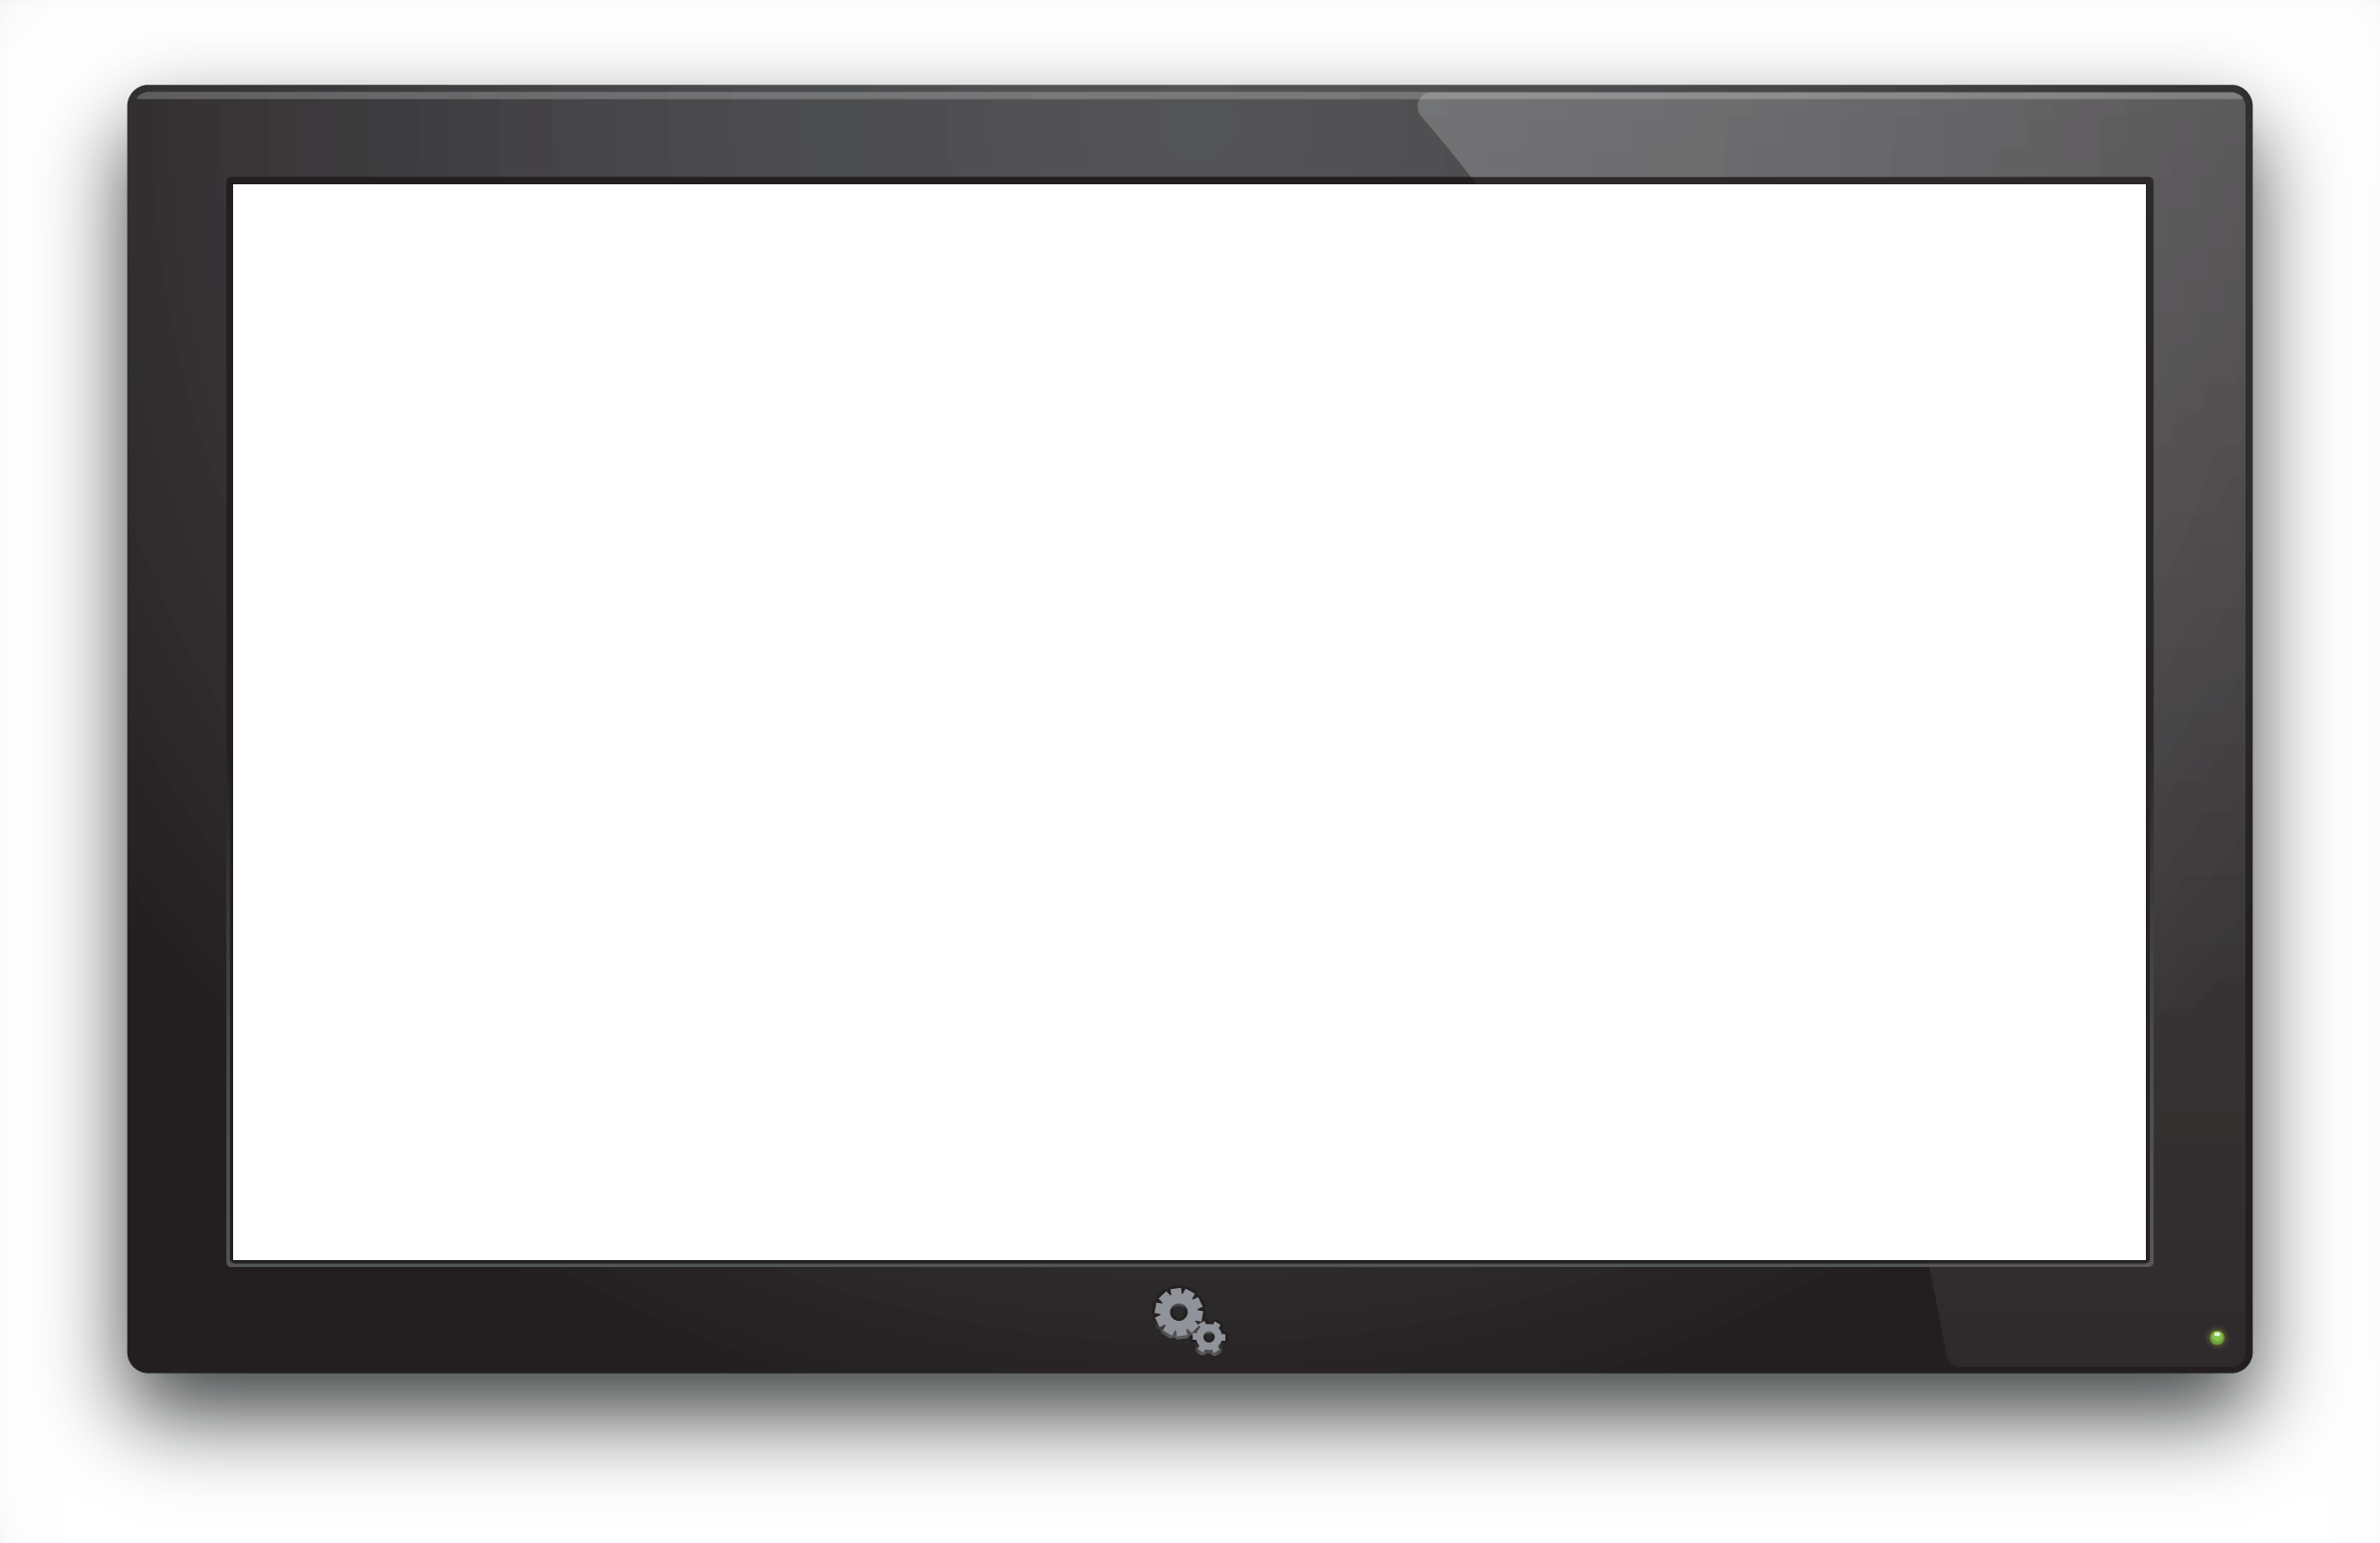 Download old image hq. Tv png graphic transparent stock